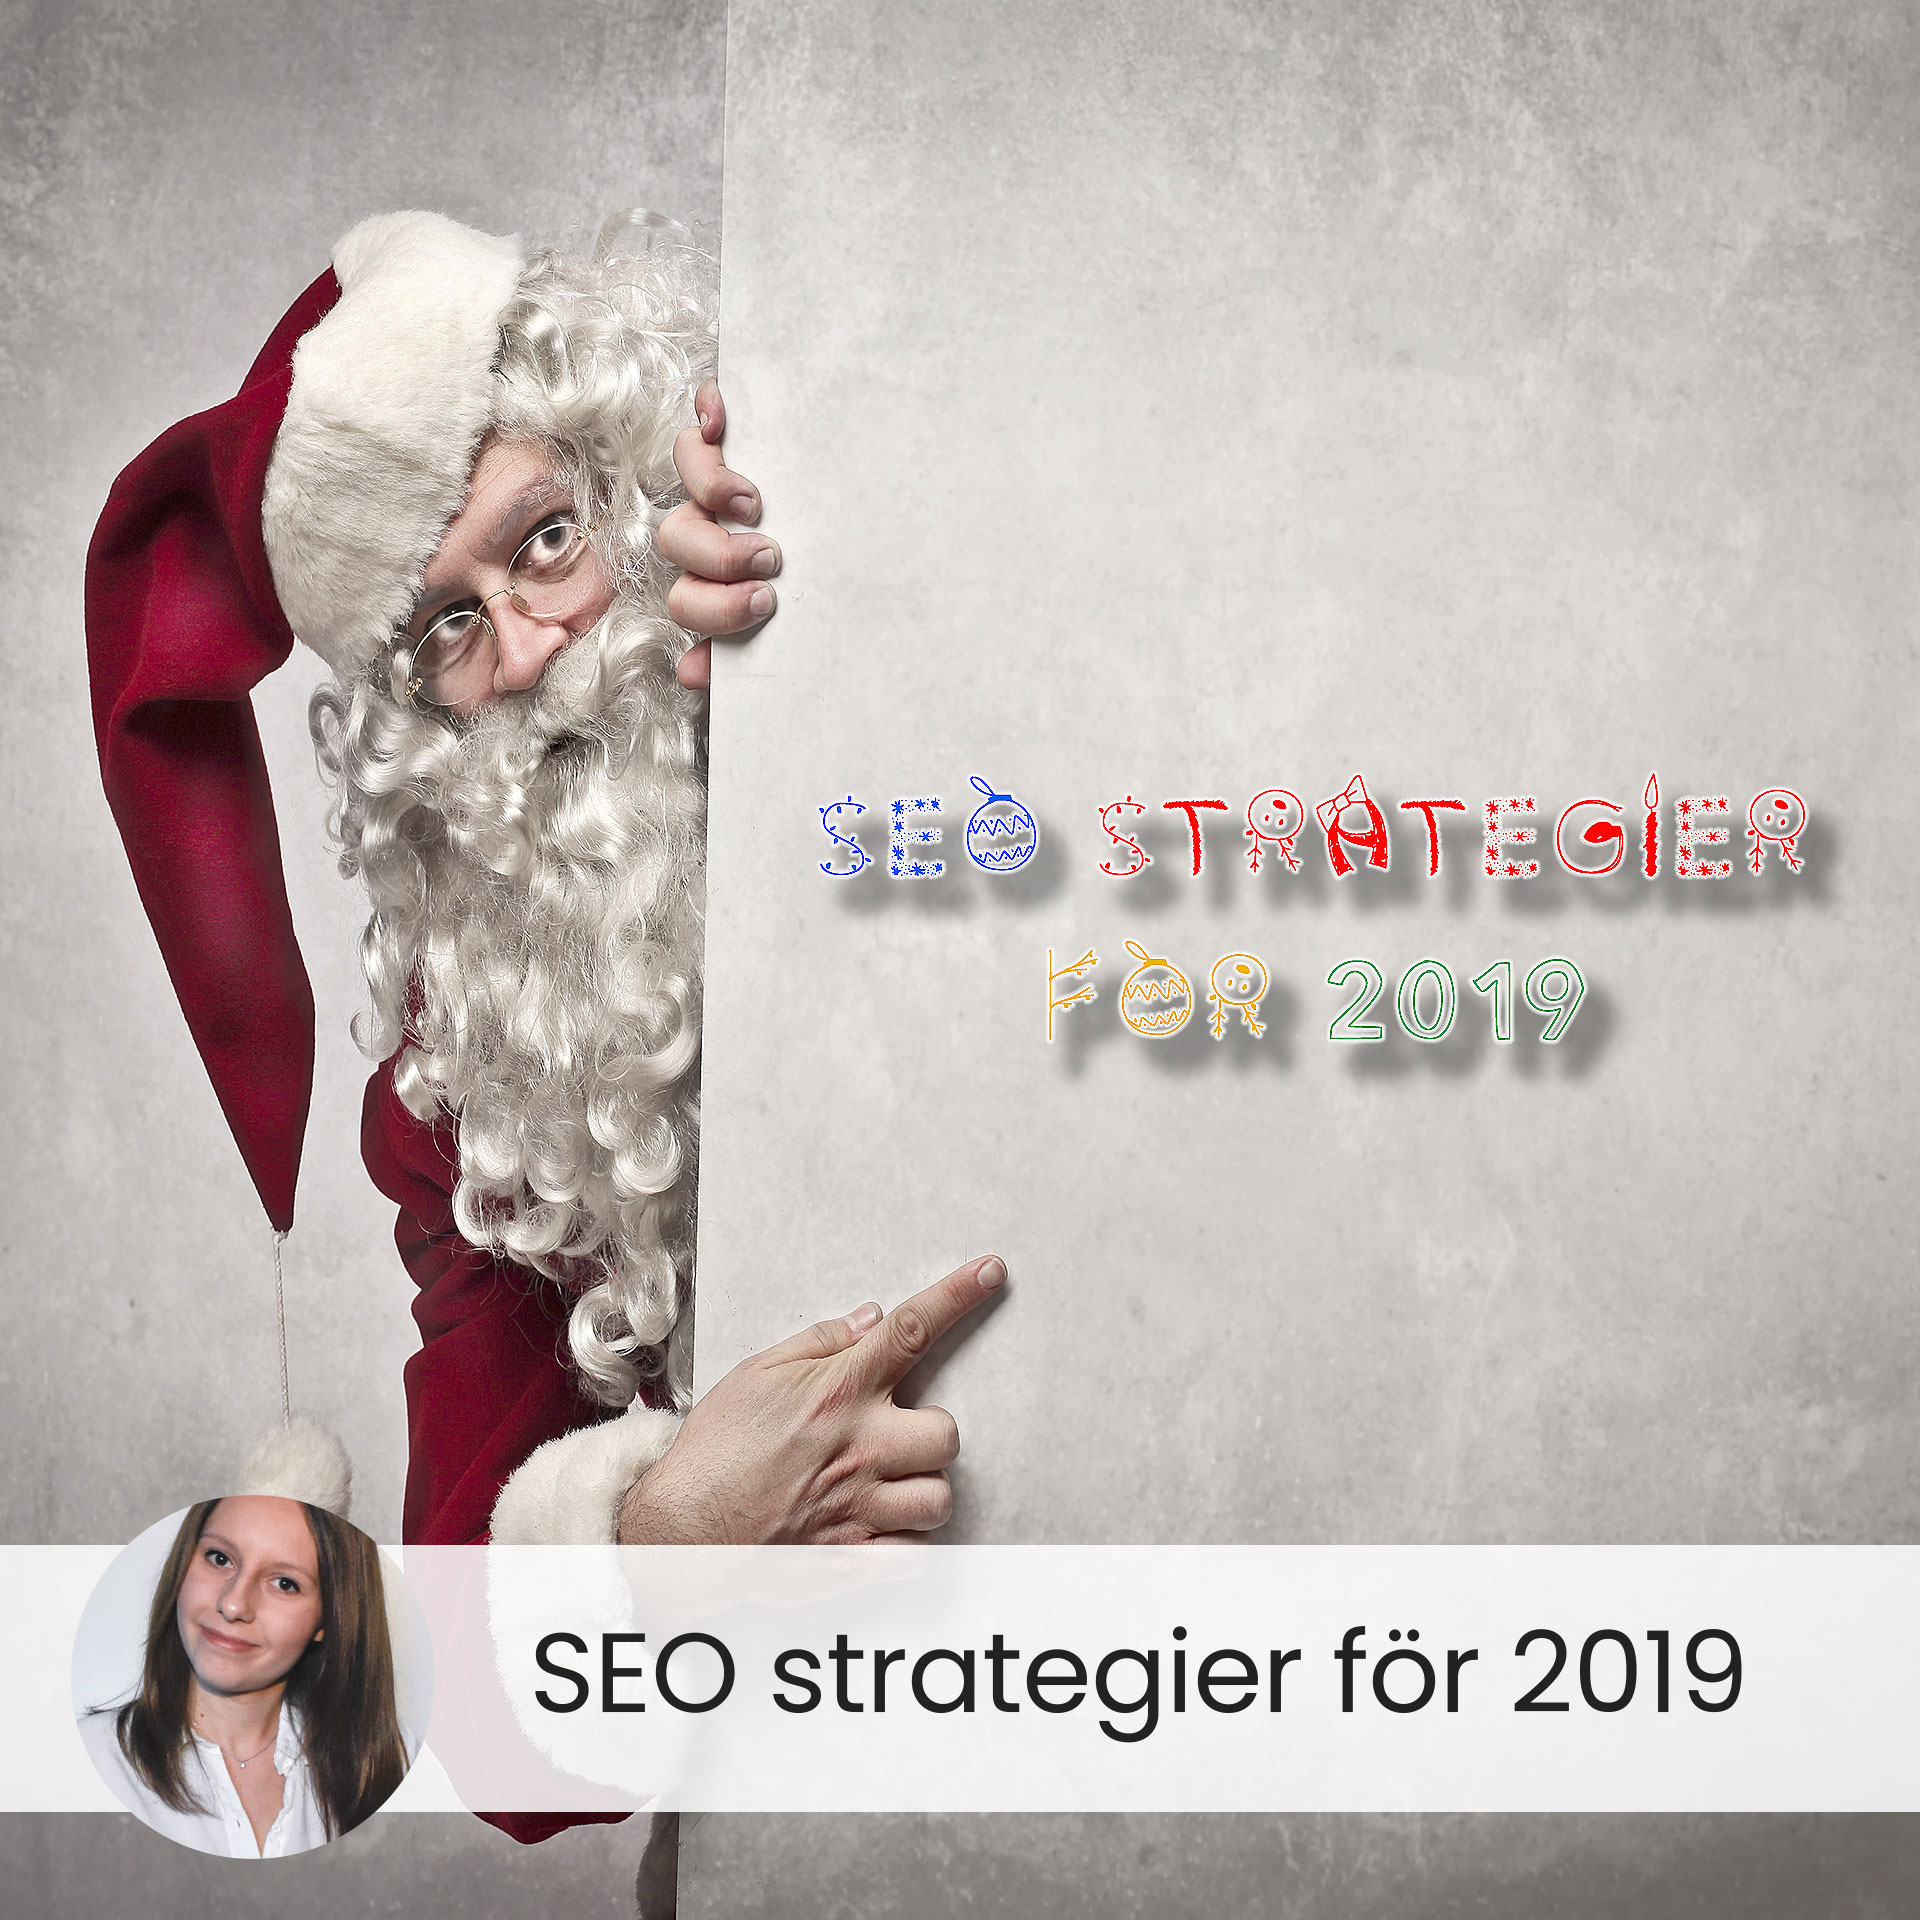 SEO strategier för 2019 - Tips & Råd